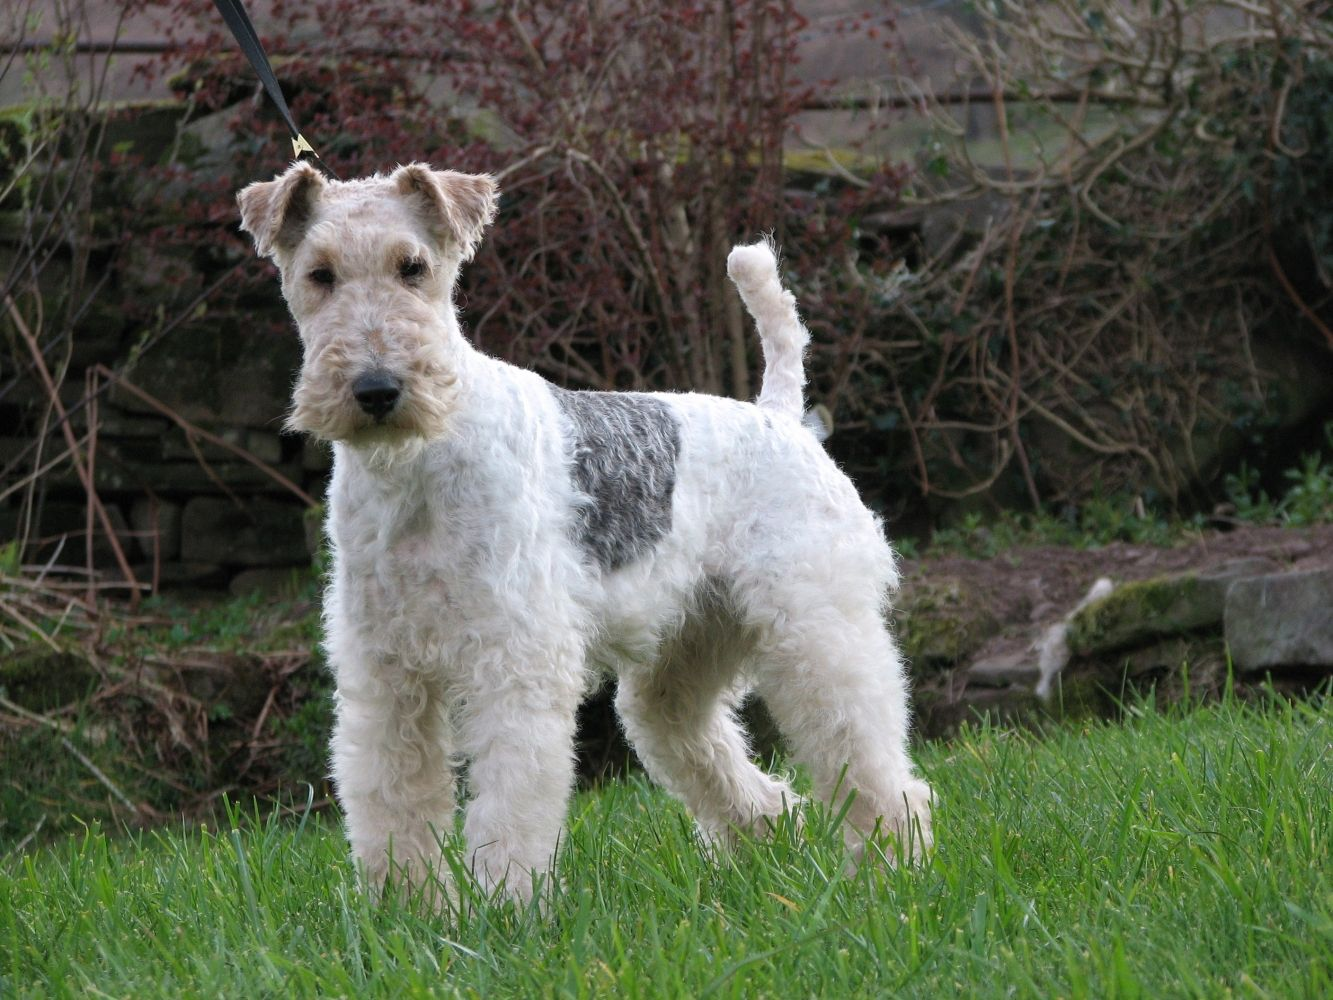 WIRE-HAIRED FOX TERRIER | Wired haired fox terriers | Pinterest ...